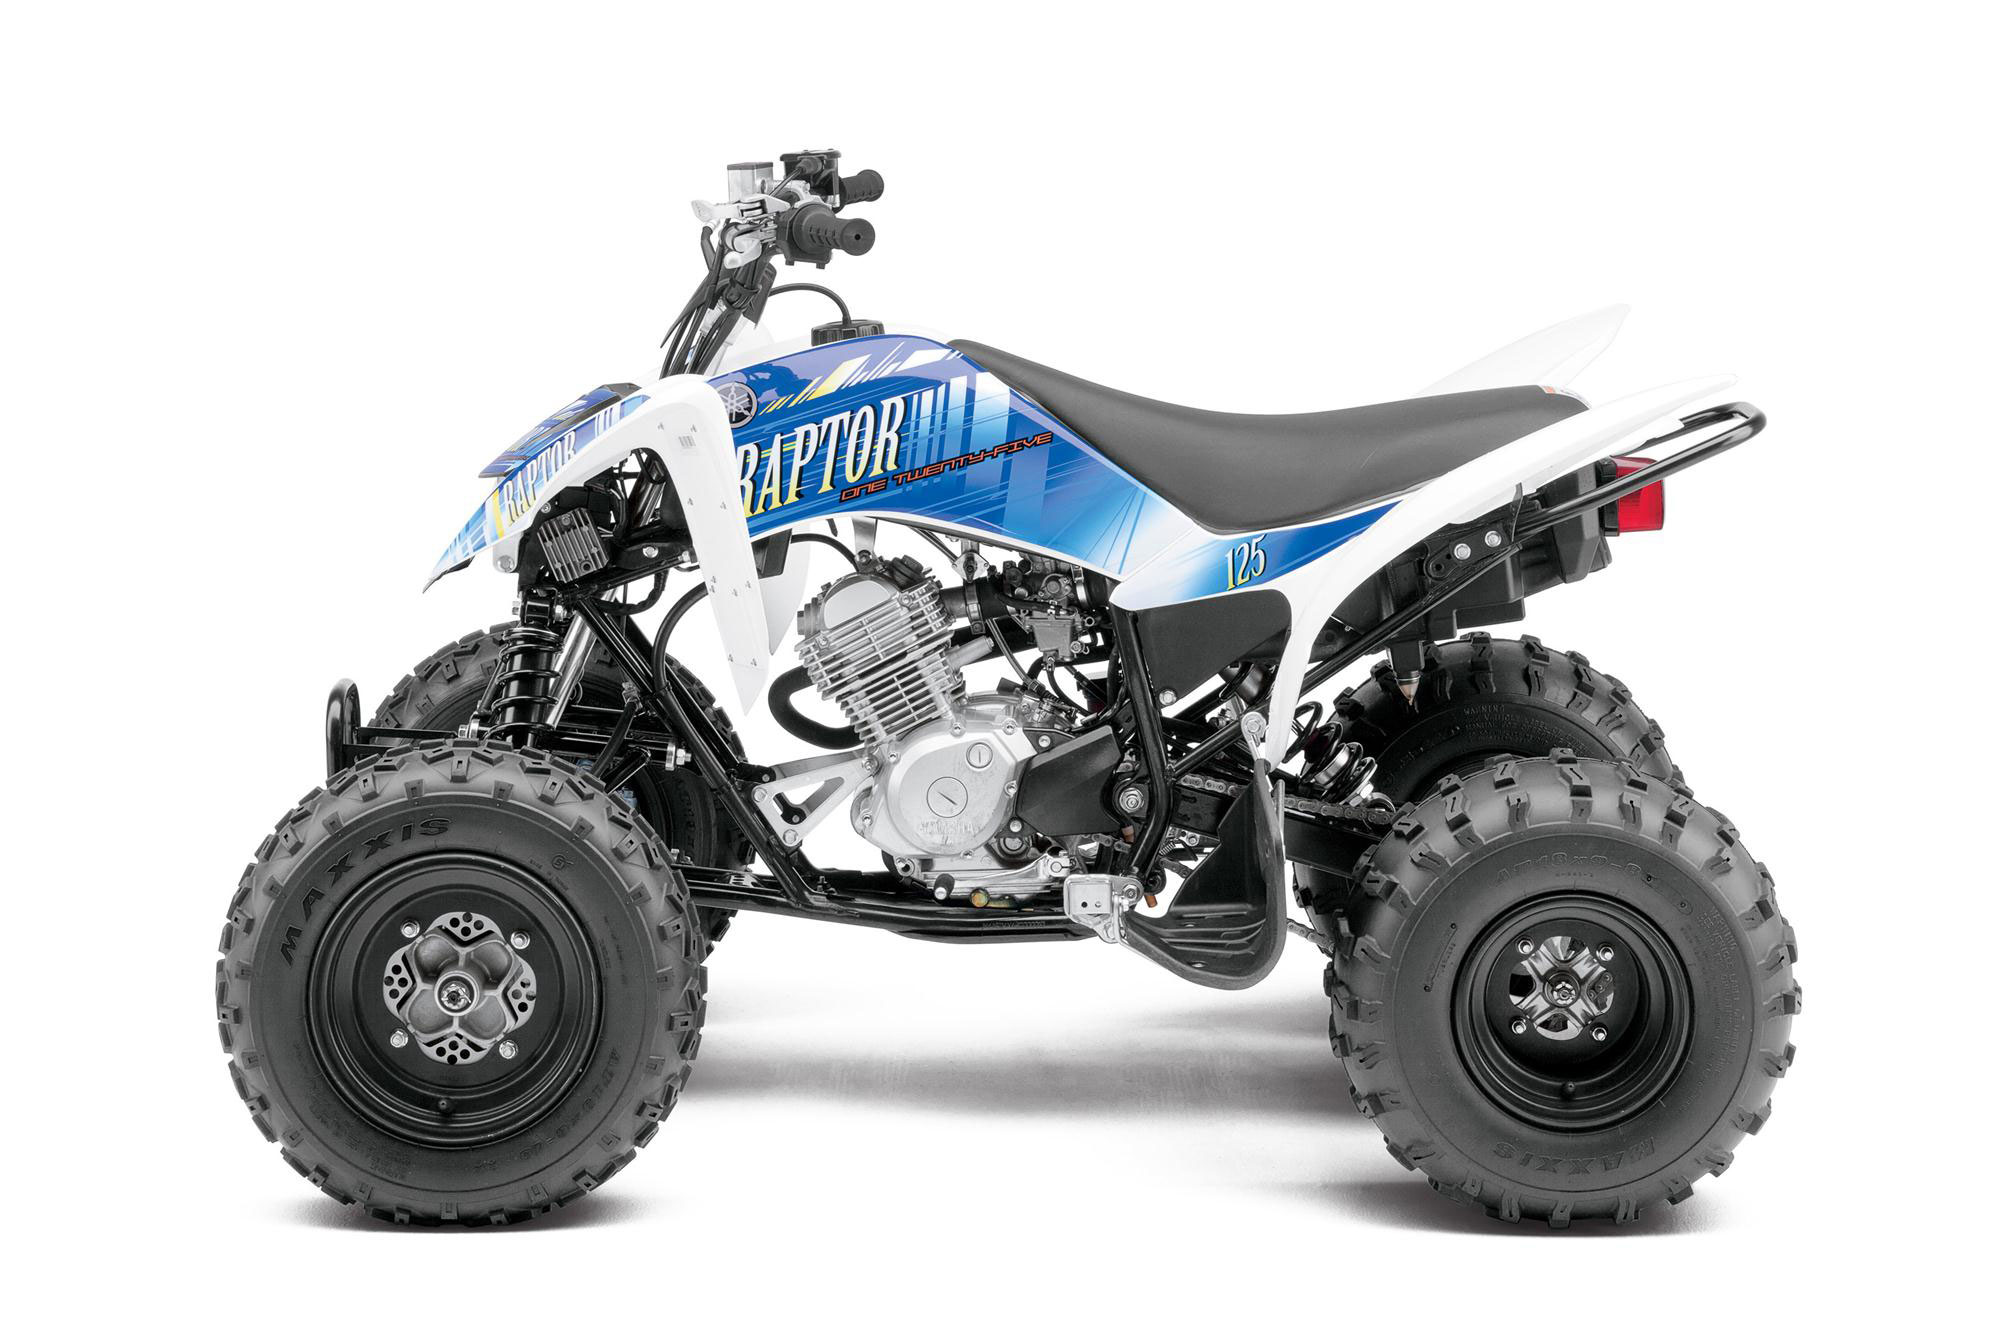 2013 yamaha raptor 125 review